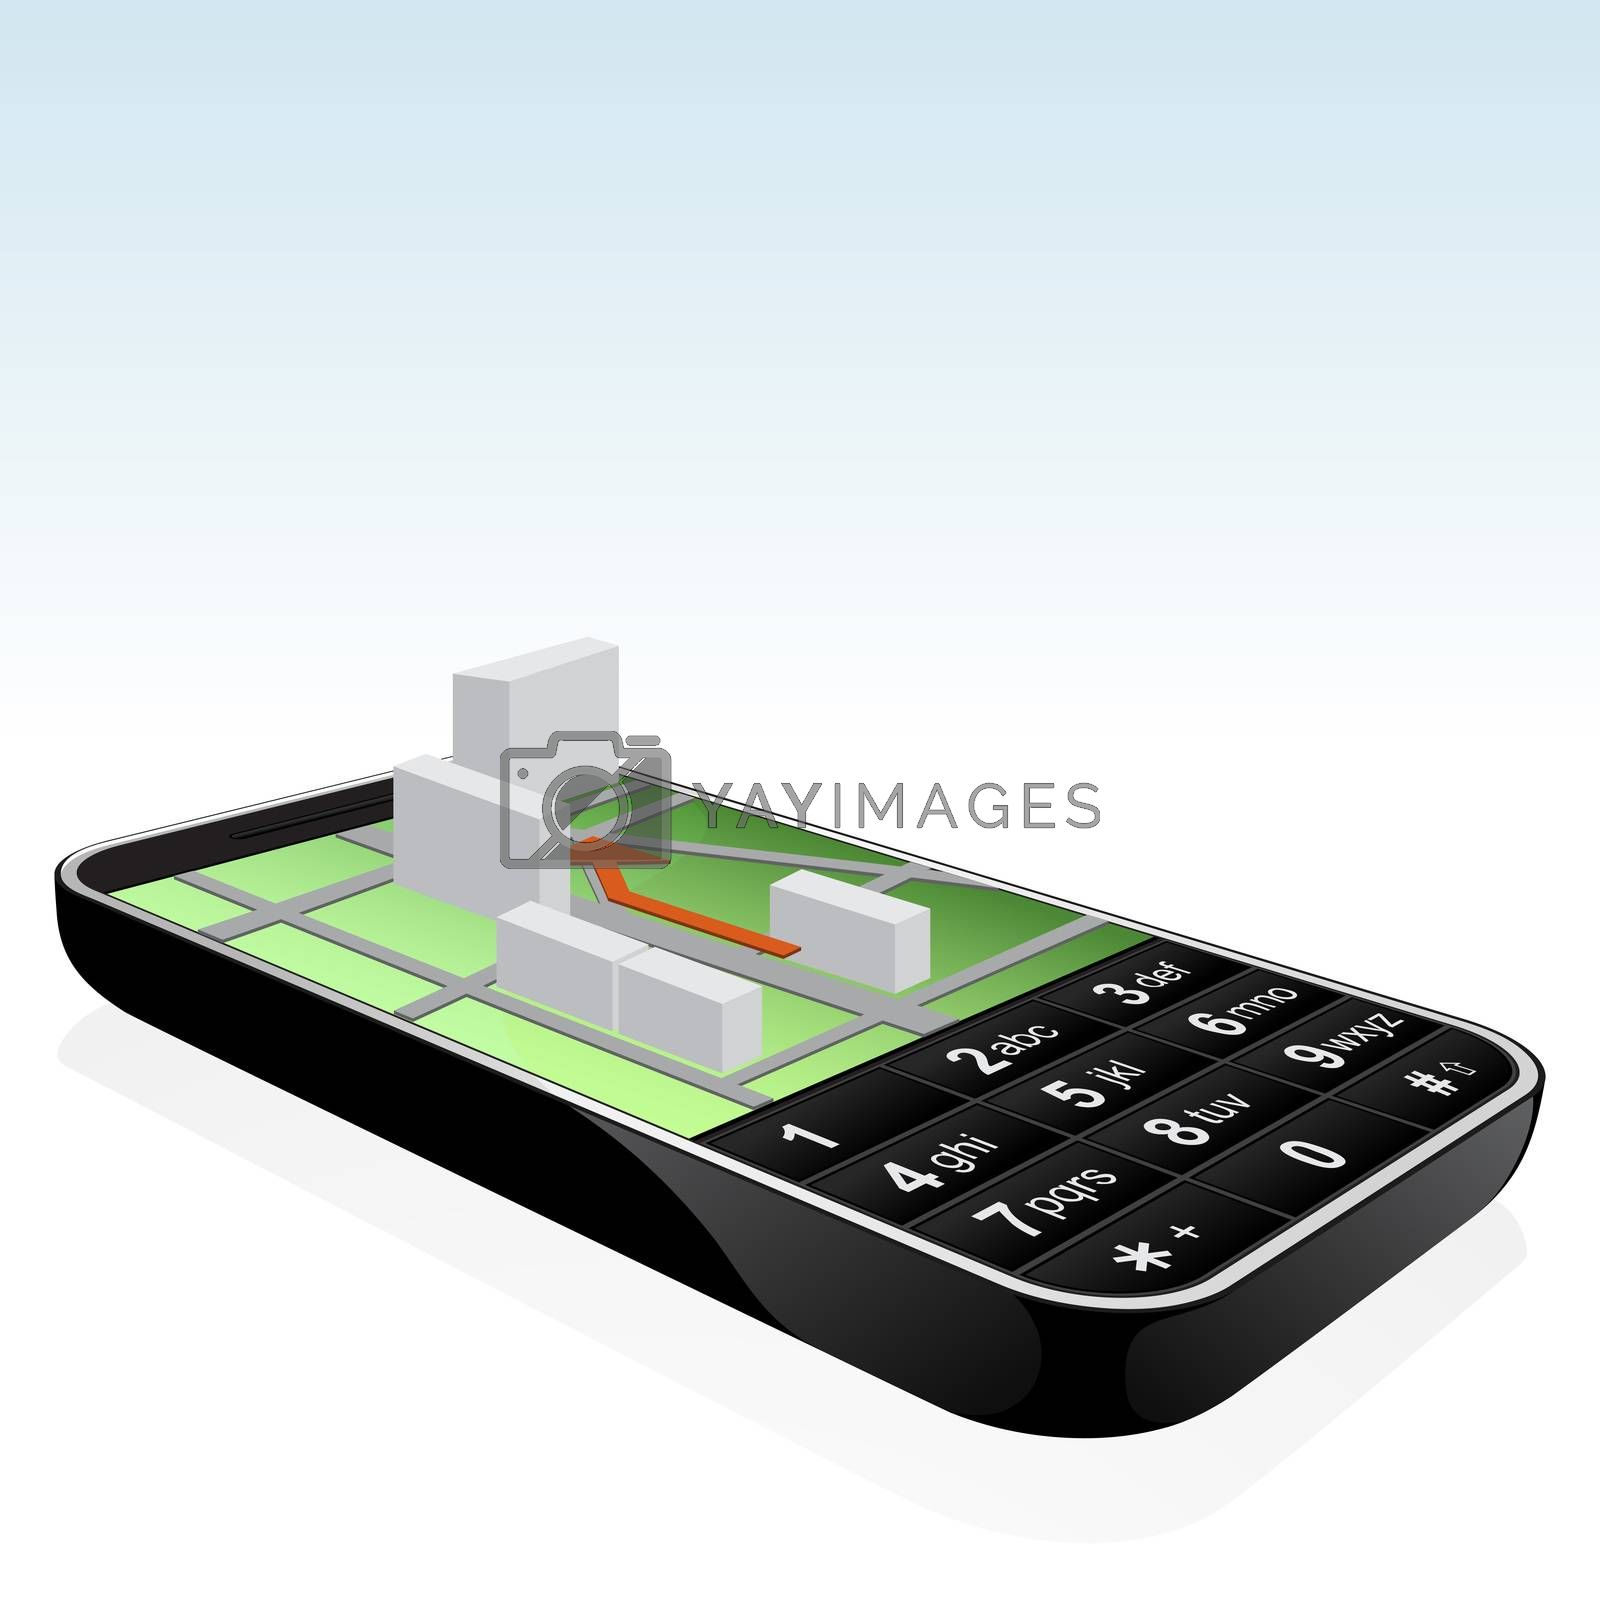 Mobile phone navigator icon by WaD